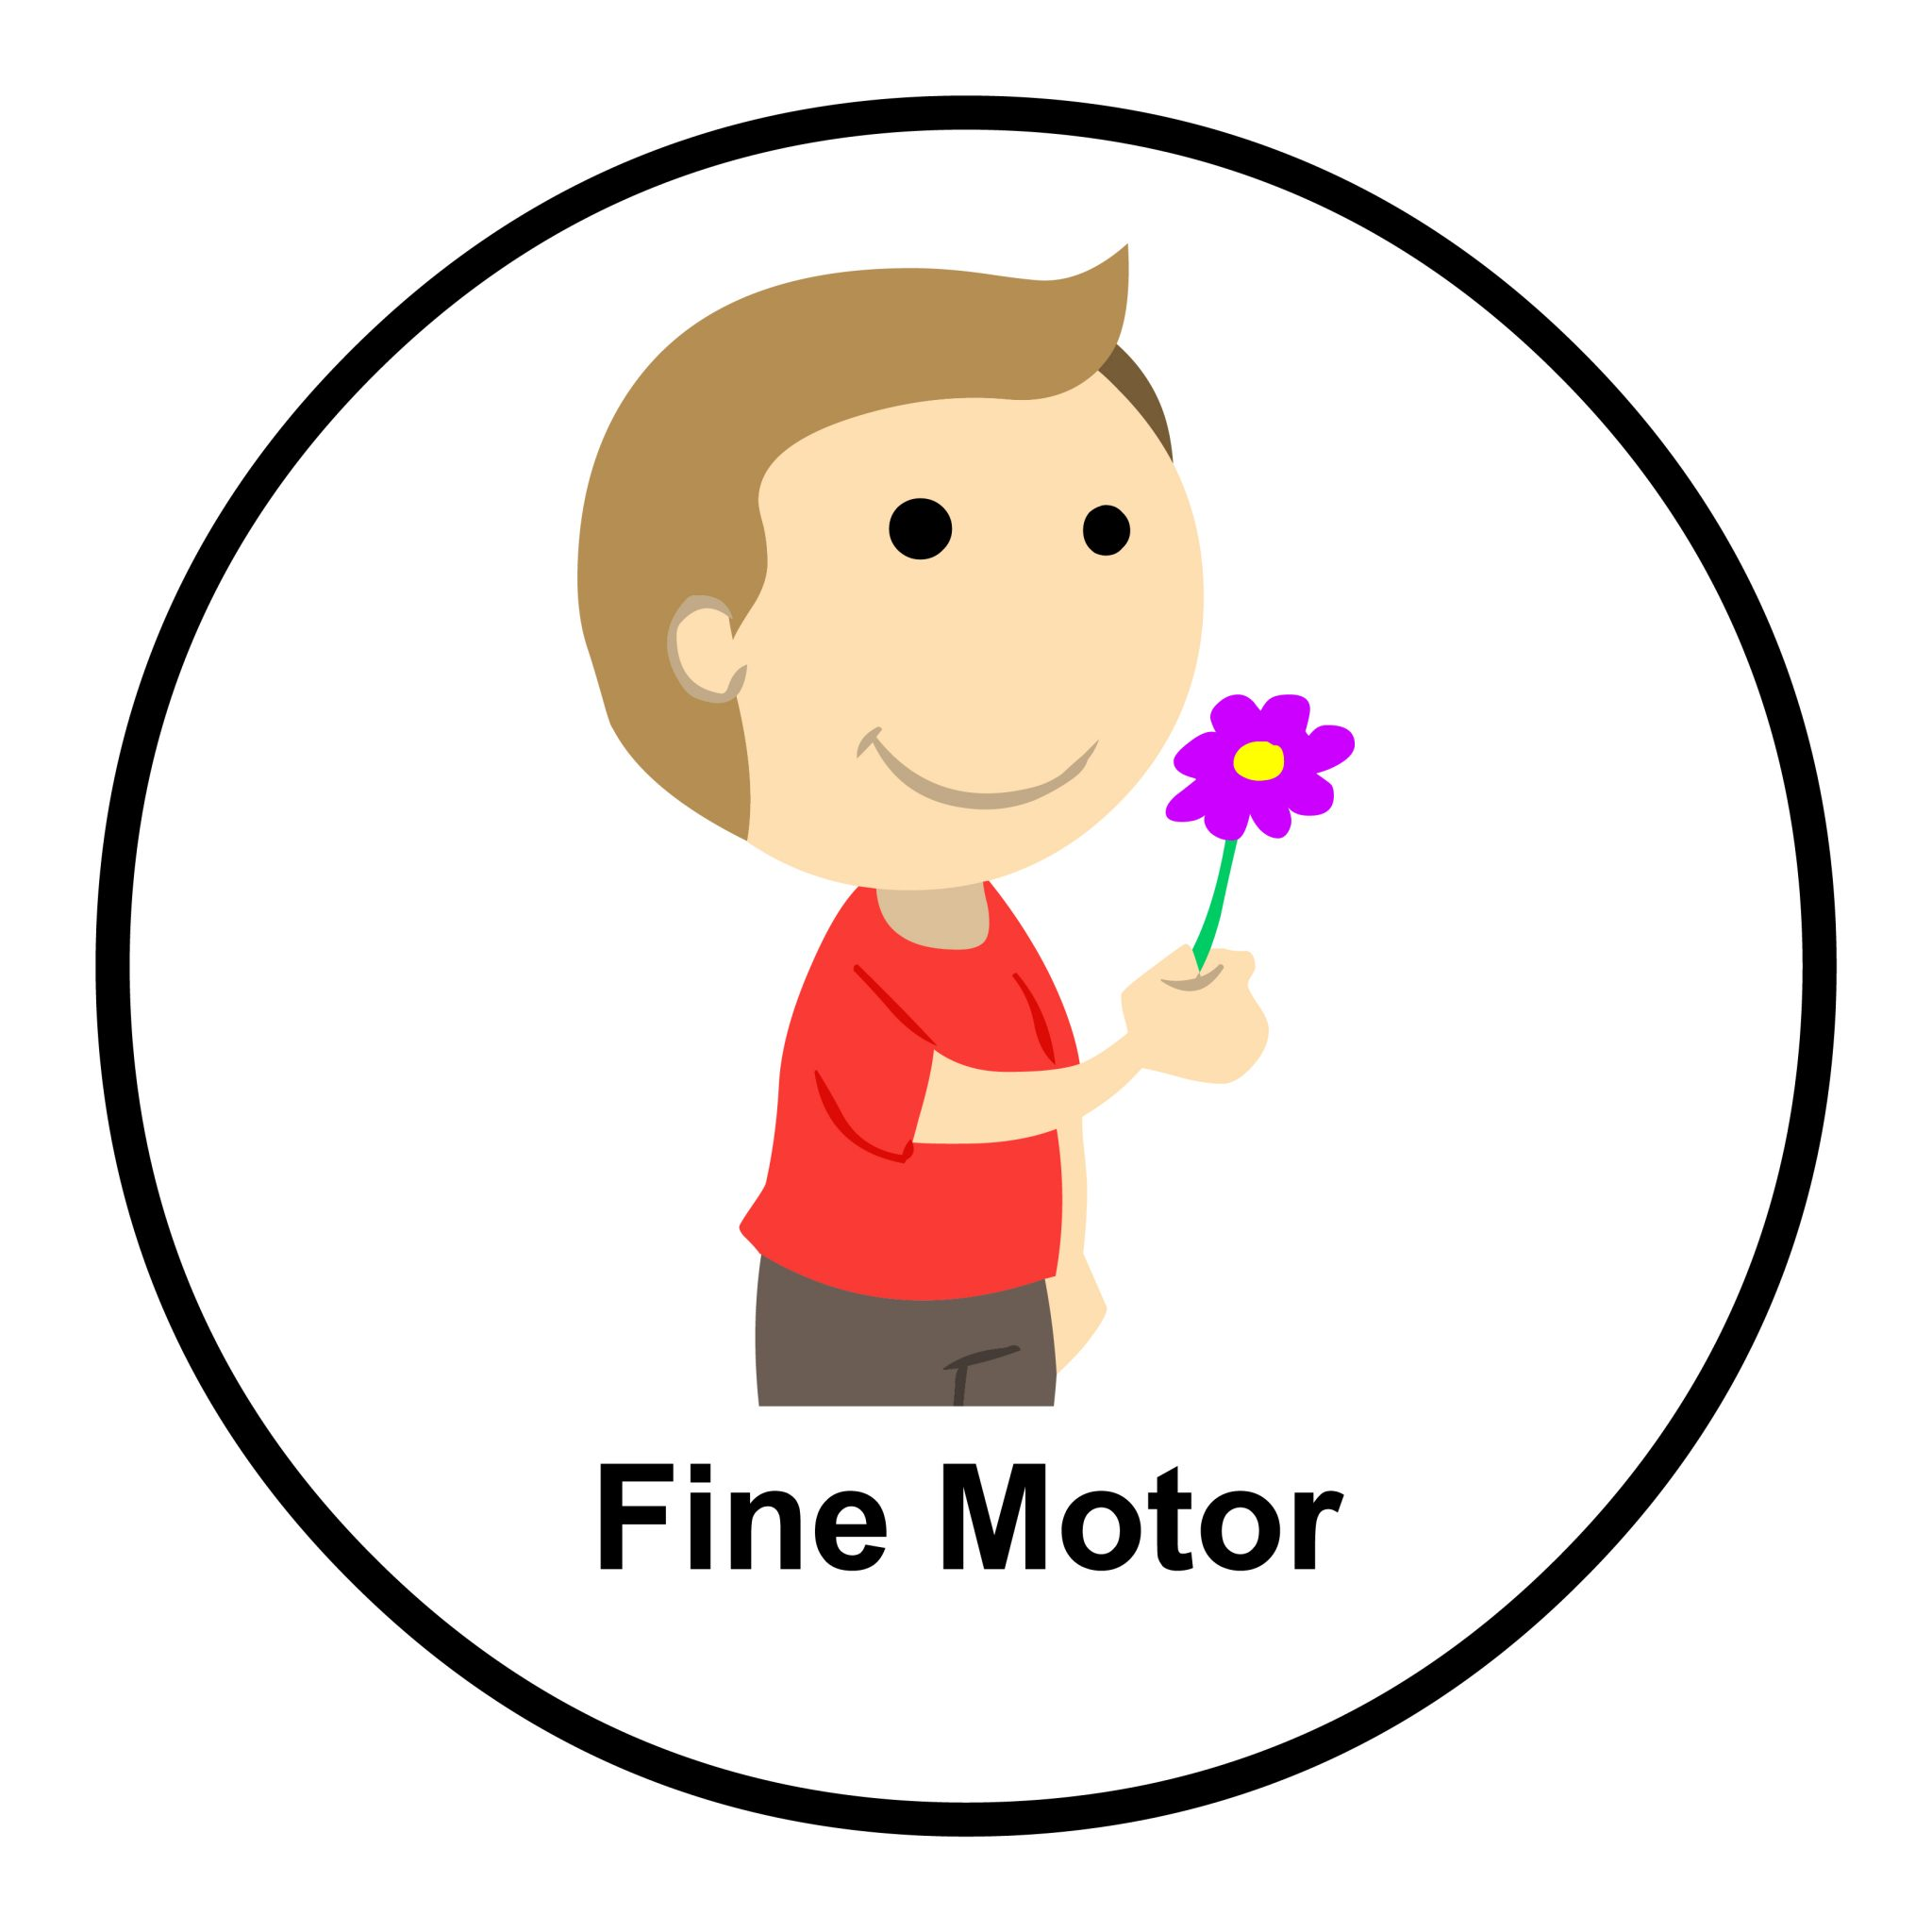 Sand clipart fine motor. How to build skills